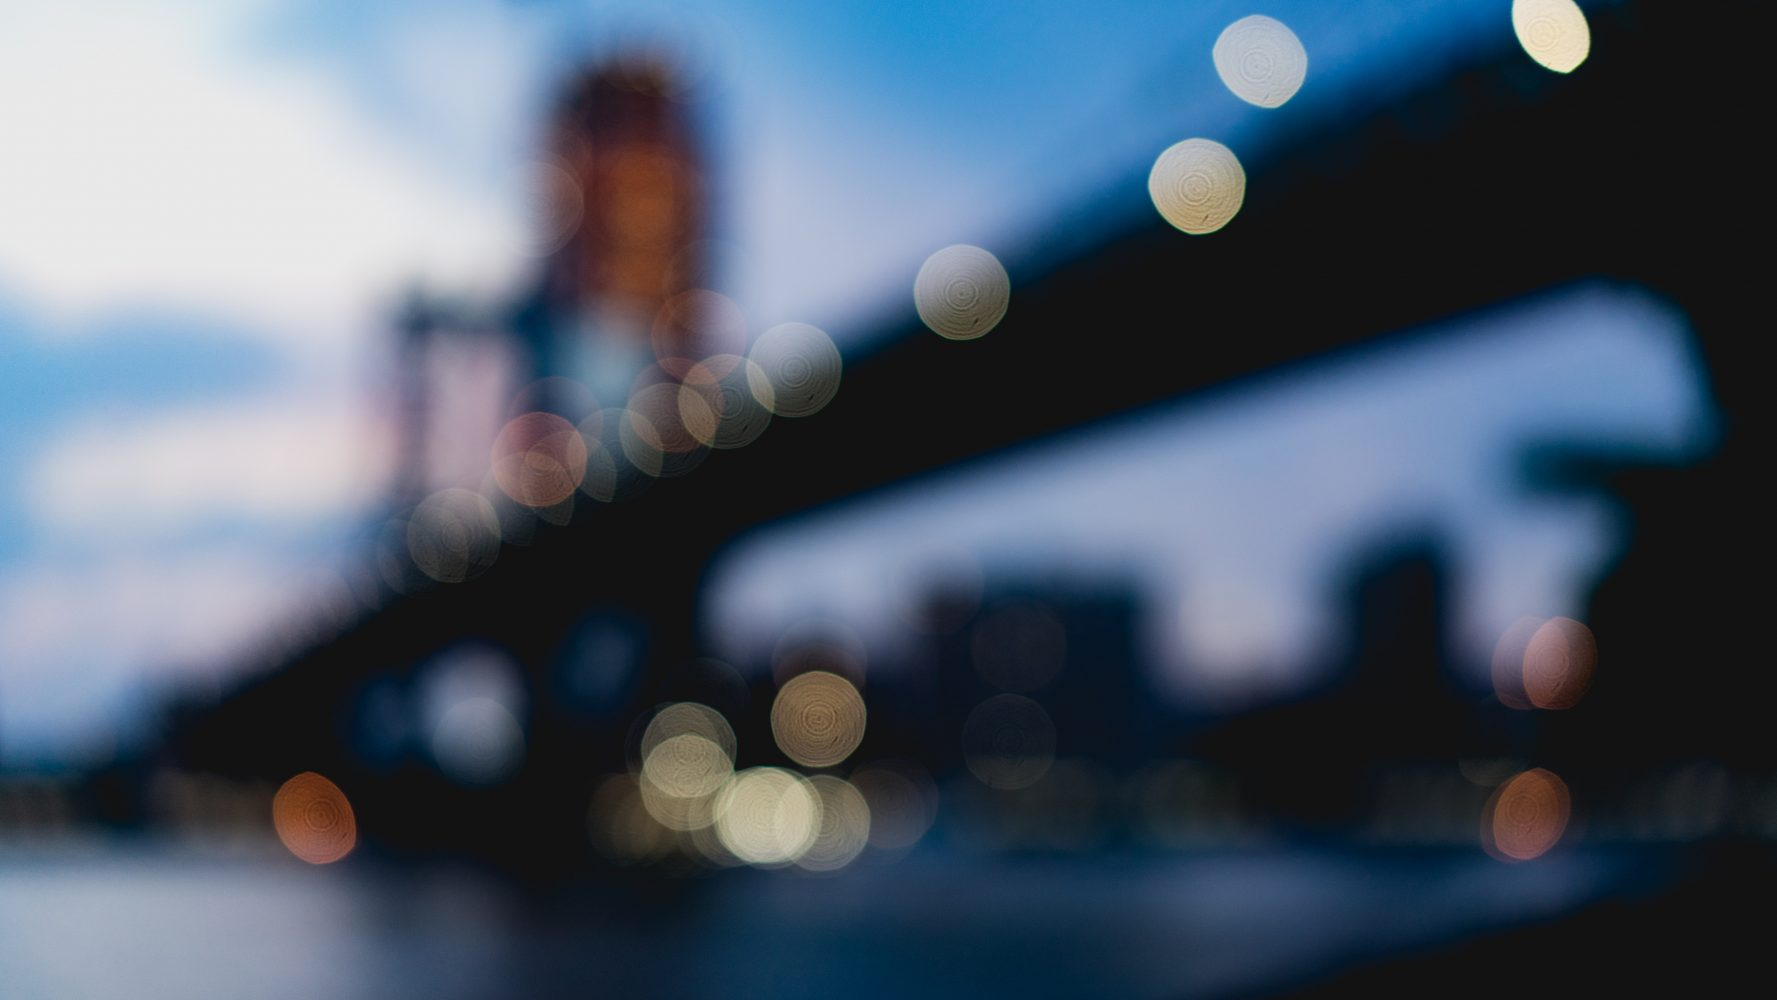 Blurry Brooklyn bridge